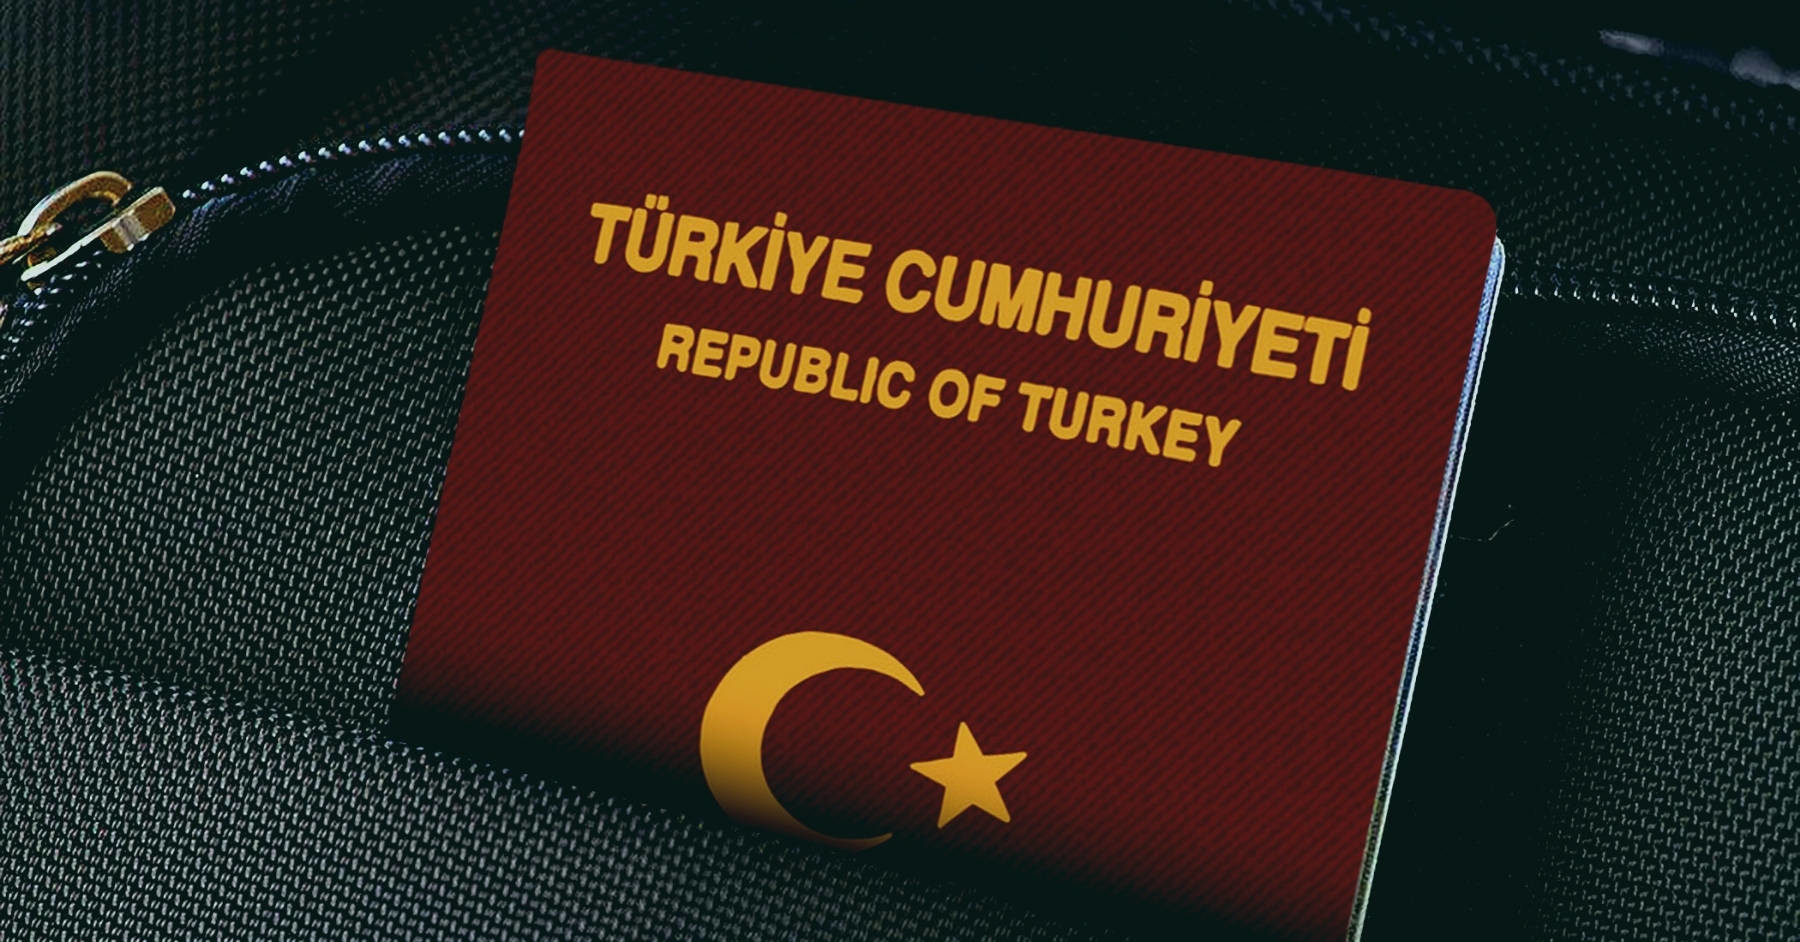 How to get a Turkish passport